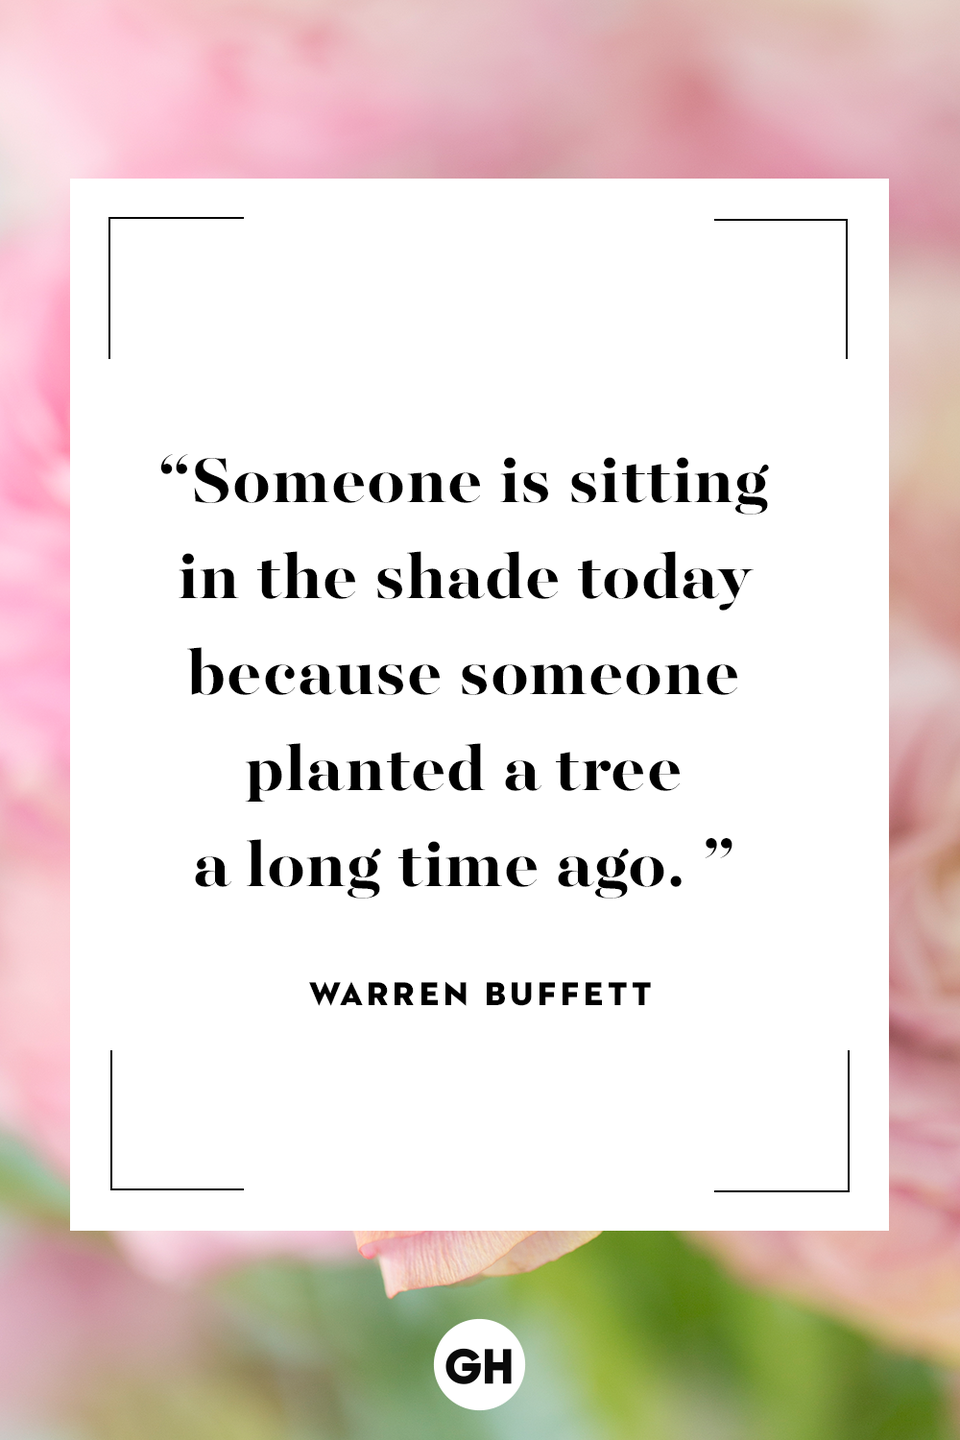 <p>Someone is sitting in the shade today because someone planted a tree a long time ago.</p>